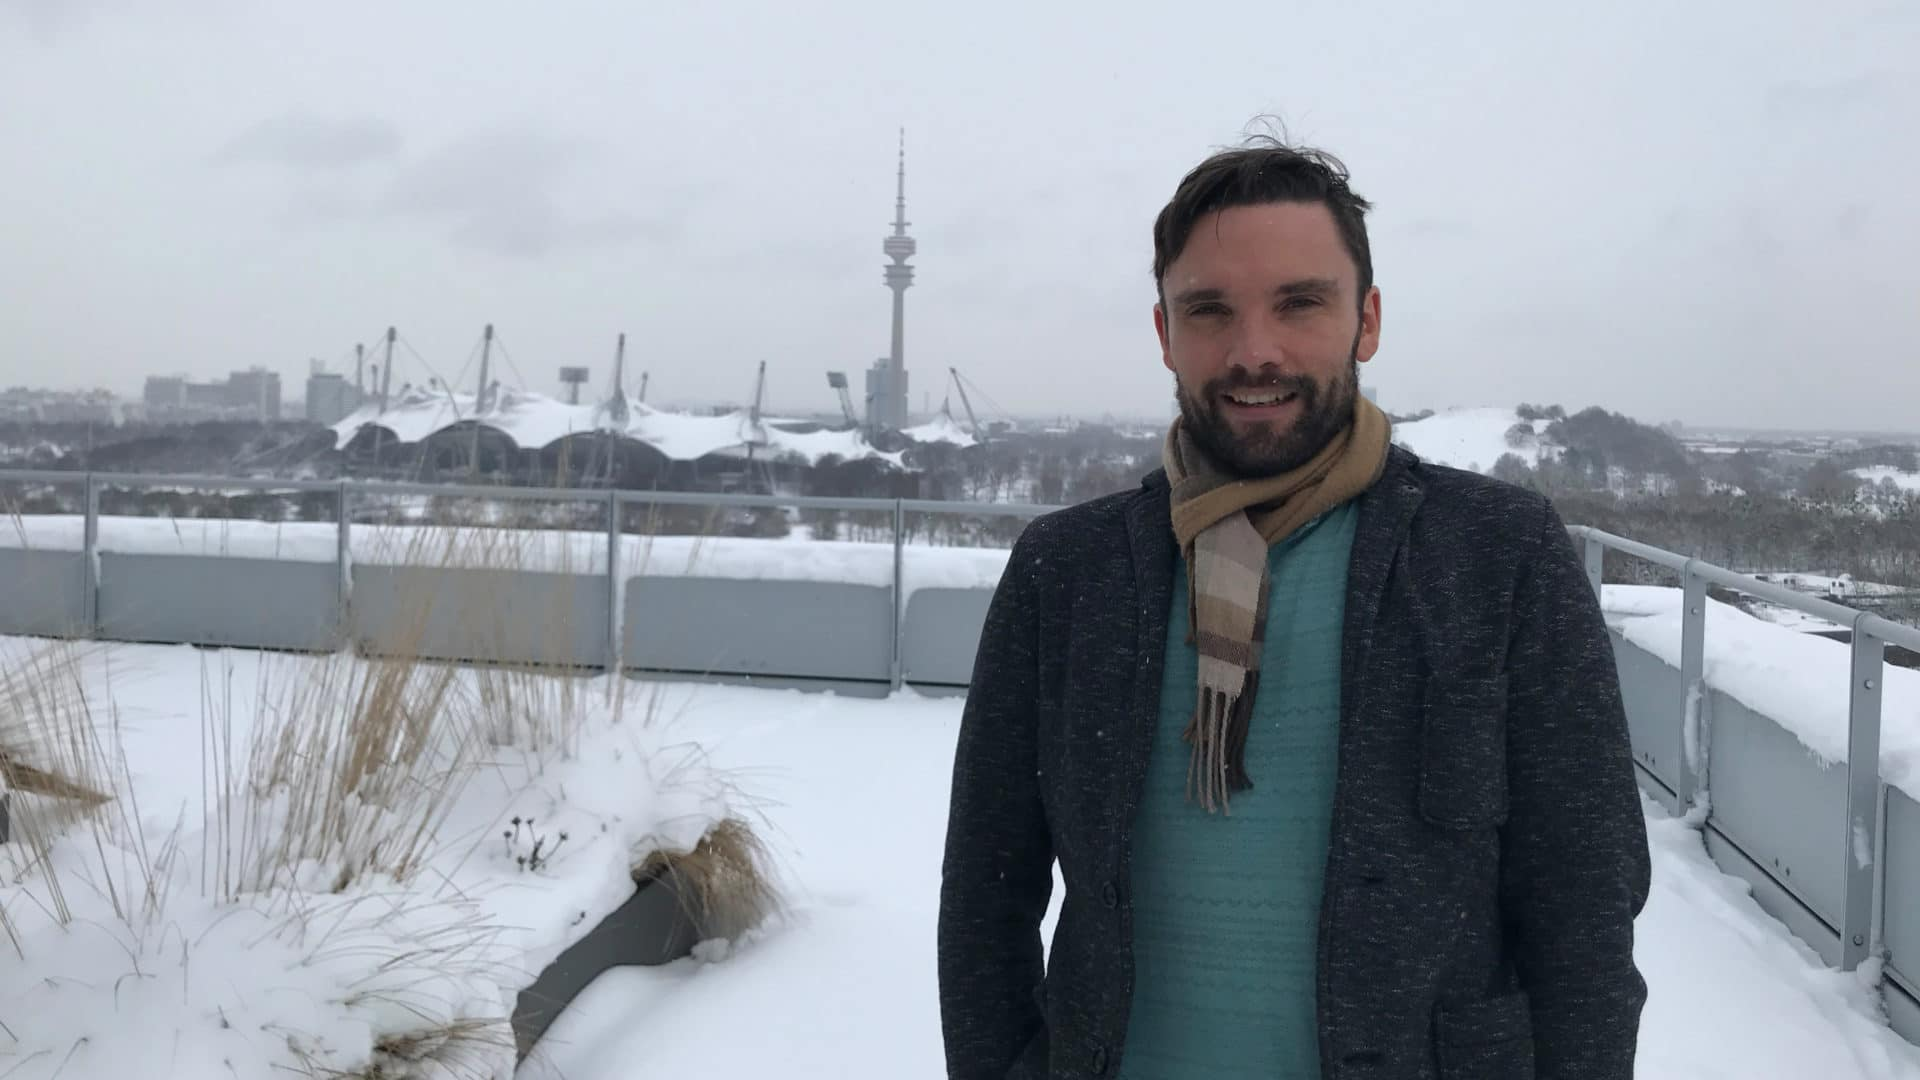 Inside-AT: Unser neuer Senior Data Project Manager Andreas Schmidt.